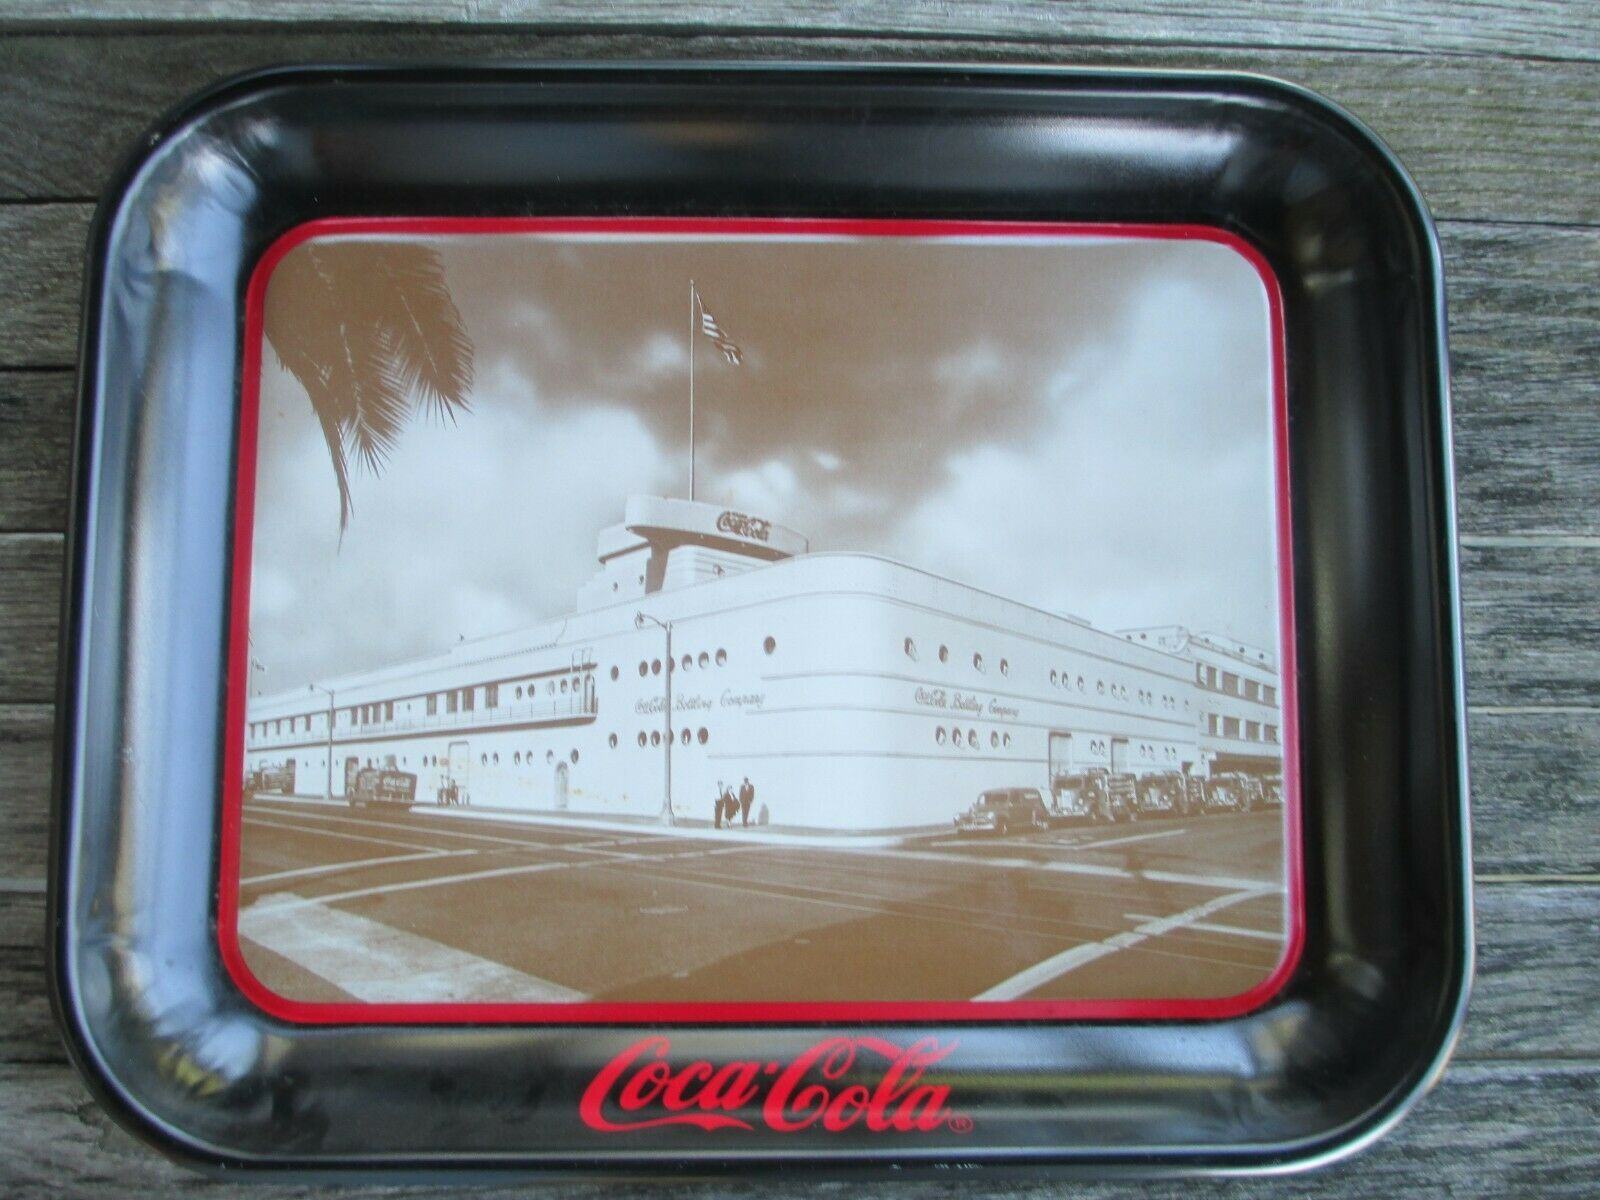 Primary image for Coca-Cola Whaddya Know Reproduction Newspaper Ad Tray Issued 1993-1998